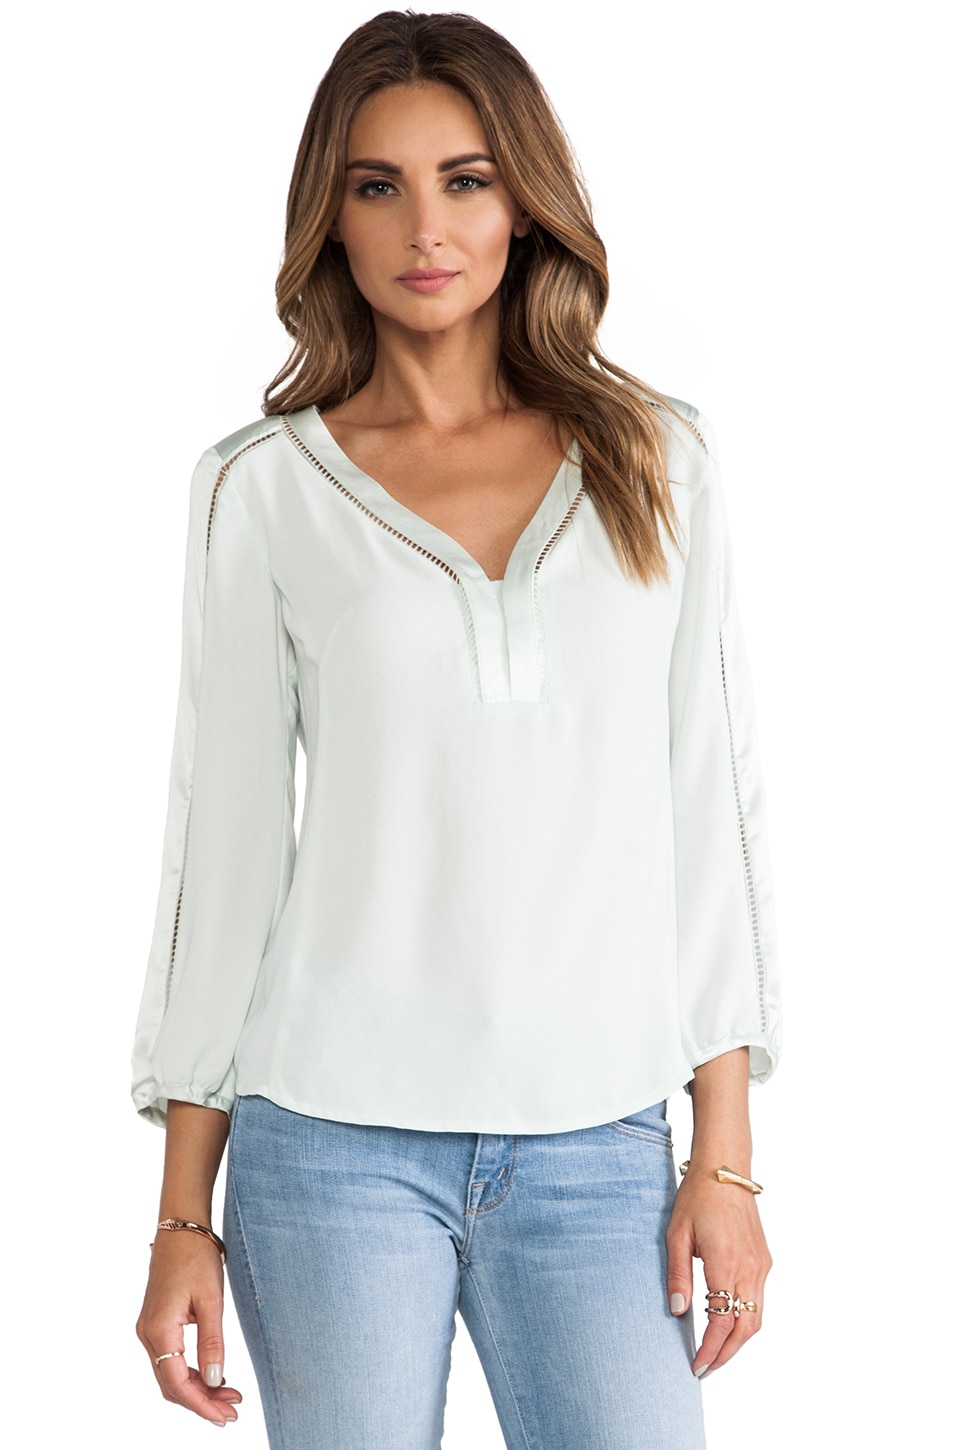 Nanette Lepore Luau Blouse in Mint